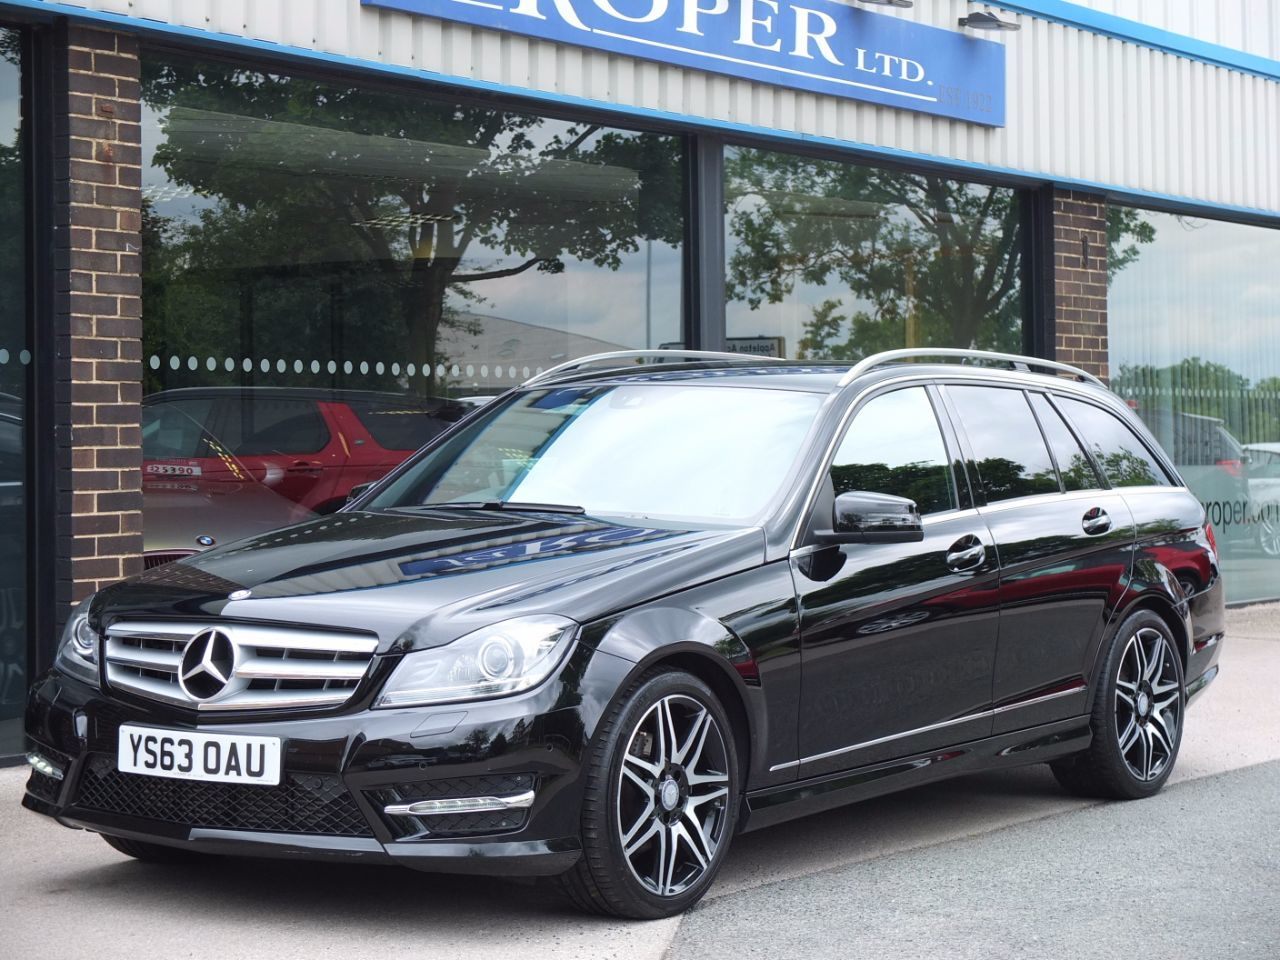 Mercedes-Benz C Class 2.1 C220 CDI BlueEFFICIENCY AMG Sport Plus Estate Auto Estate Diesel Obsidian Black MetallicMercedes-Benz C Class 2.1 C220 CDI BlueEFFICIENCY AMG Sport Plus Estate Auto Estate Diesel Obsidian Black Metallic at fa Roper Ltd Bradford